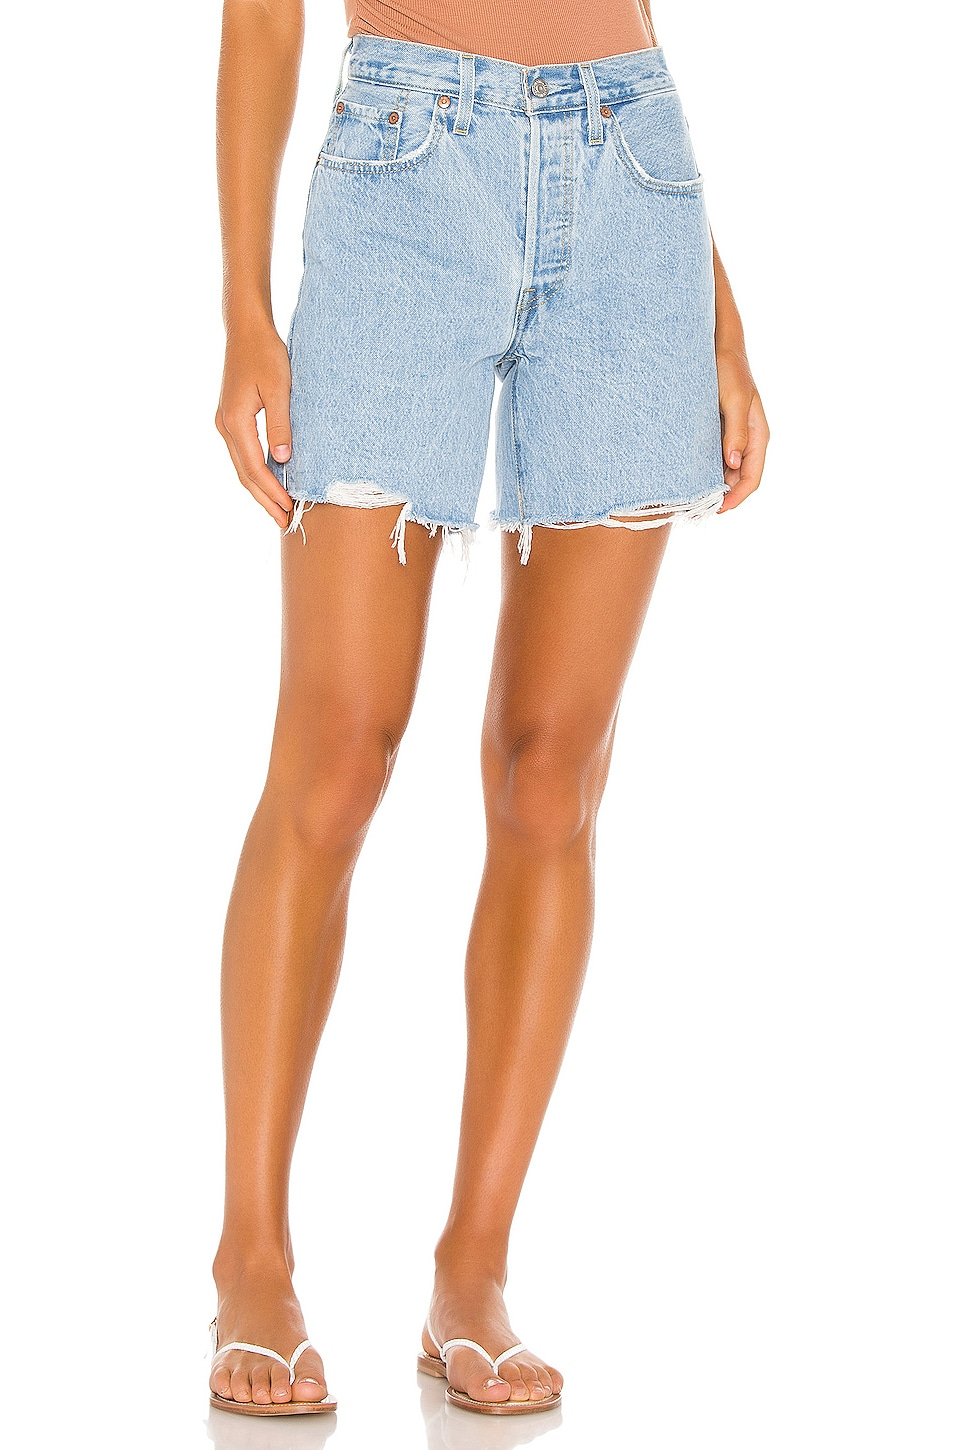 501 Mid Thigh Short             LEVI'S                                                                                                       CA$ 94.58 8